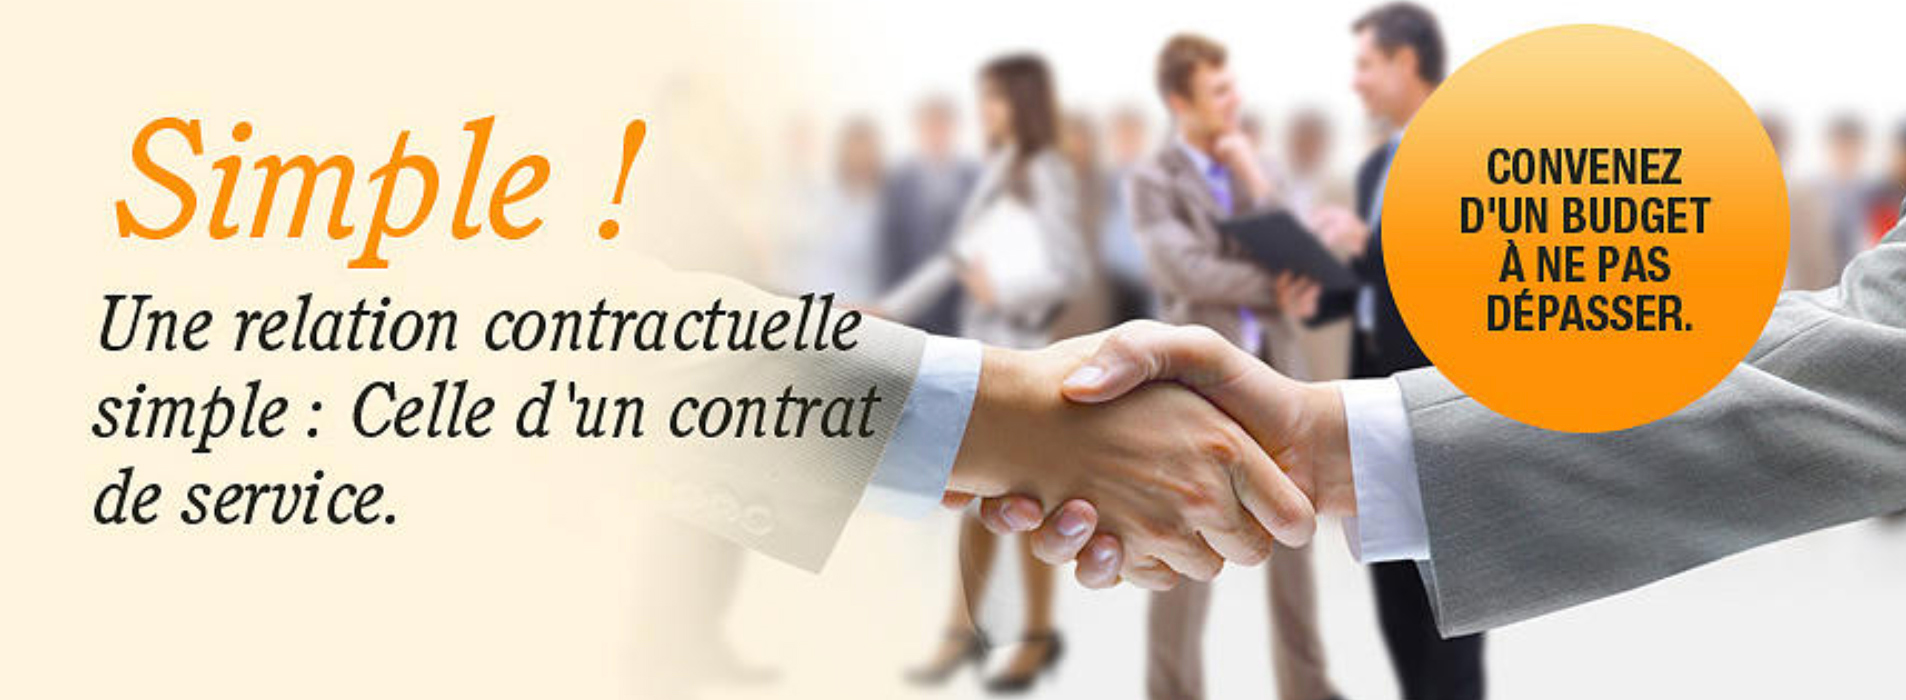 Simple ! Une relation contractuelle simple : Celle d'un contrat de service.